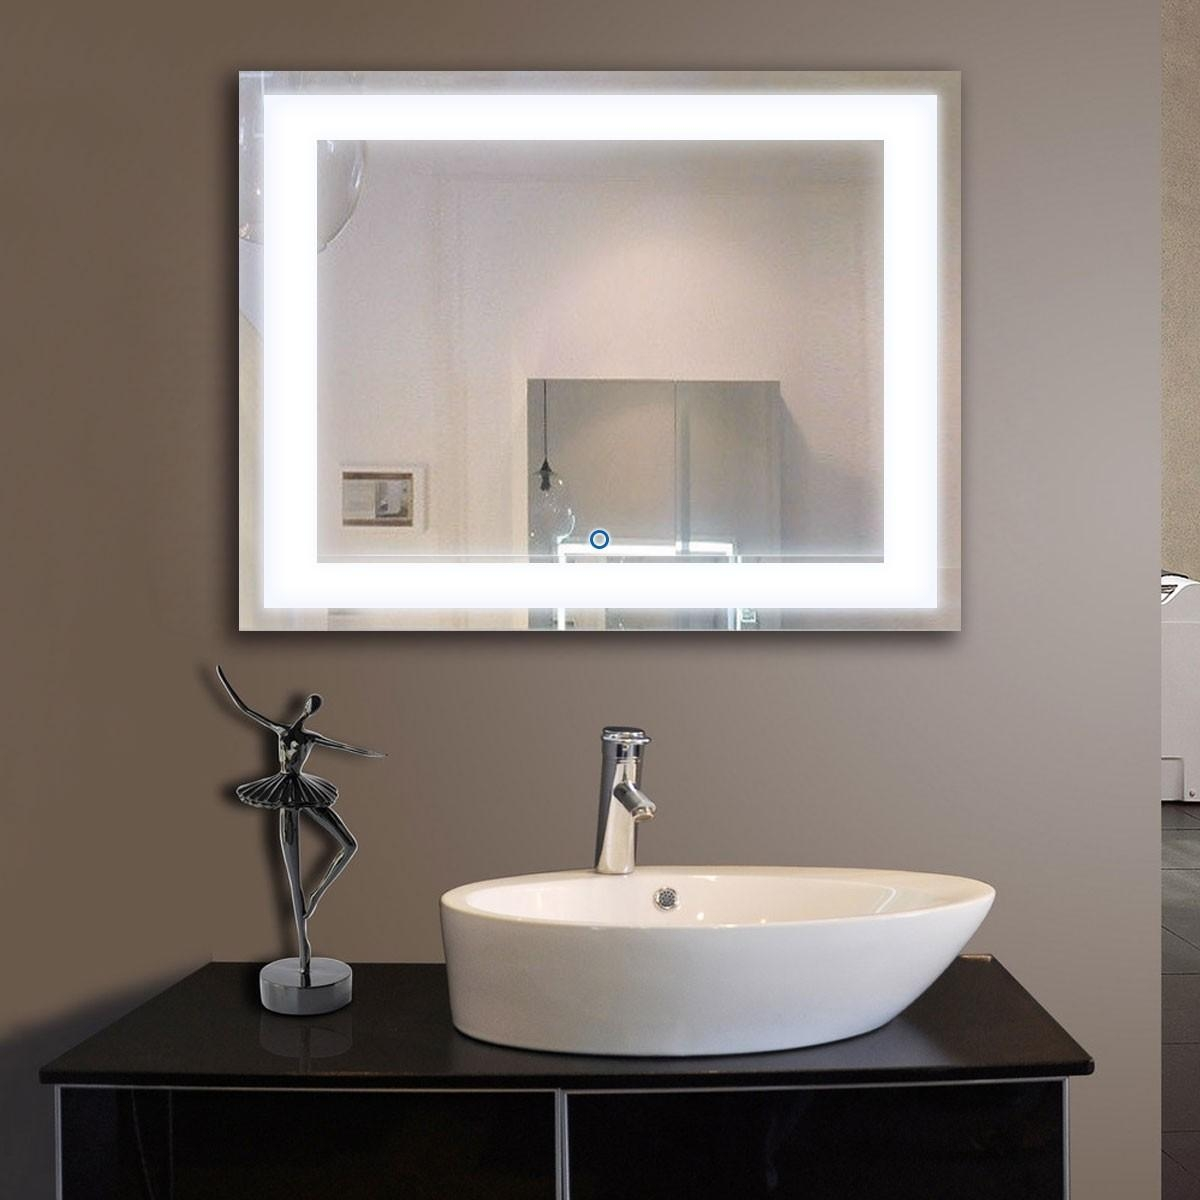 Amazing Hotel Bathroom Mirrors For Sqale Liquidators 20 With Hotel Intended For Hotel Mirrors (View 18 of 20)